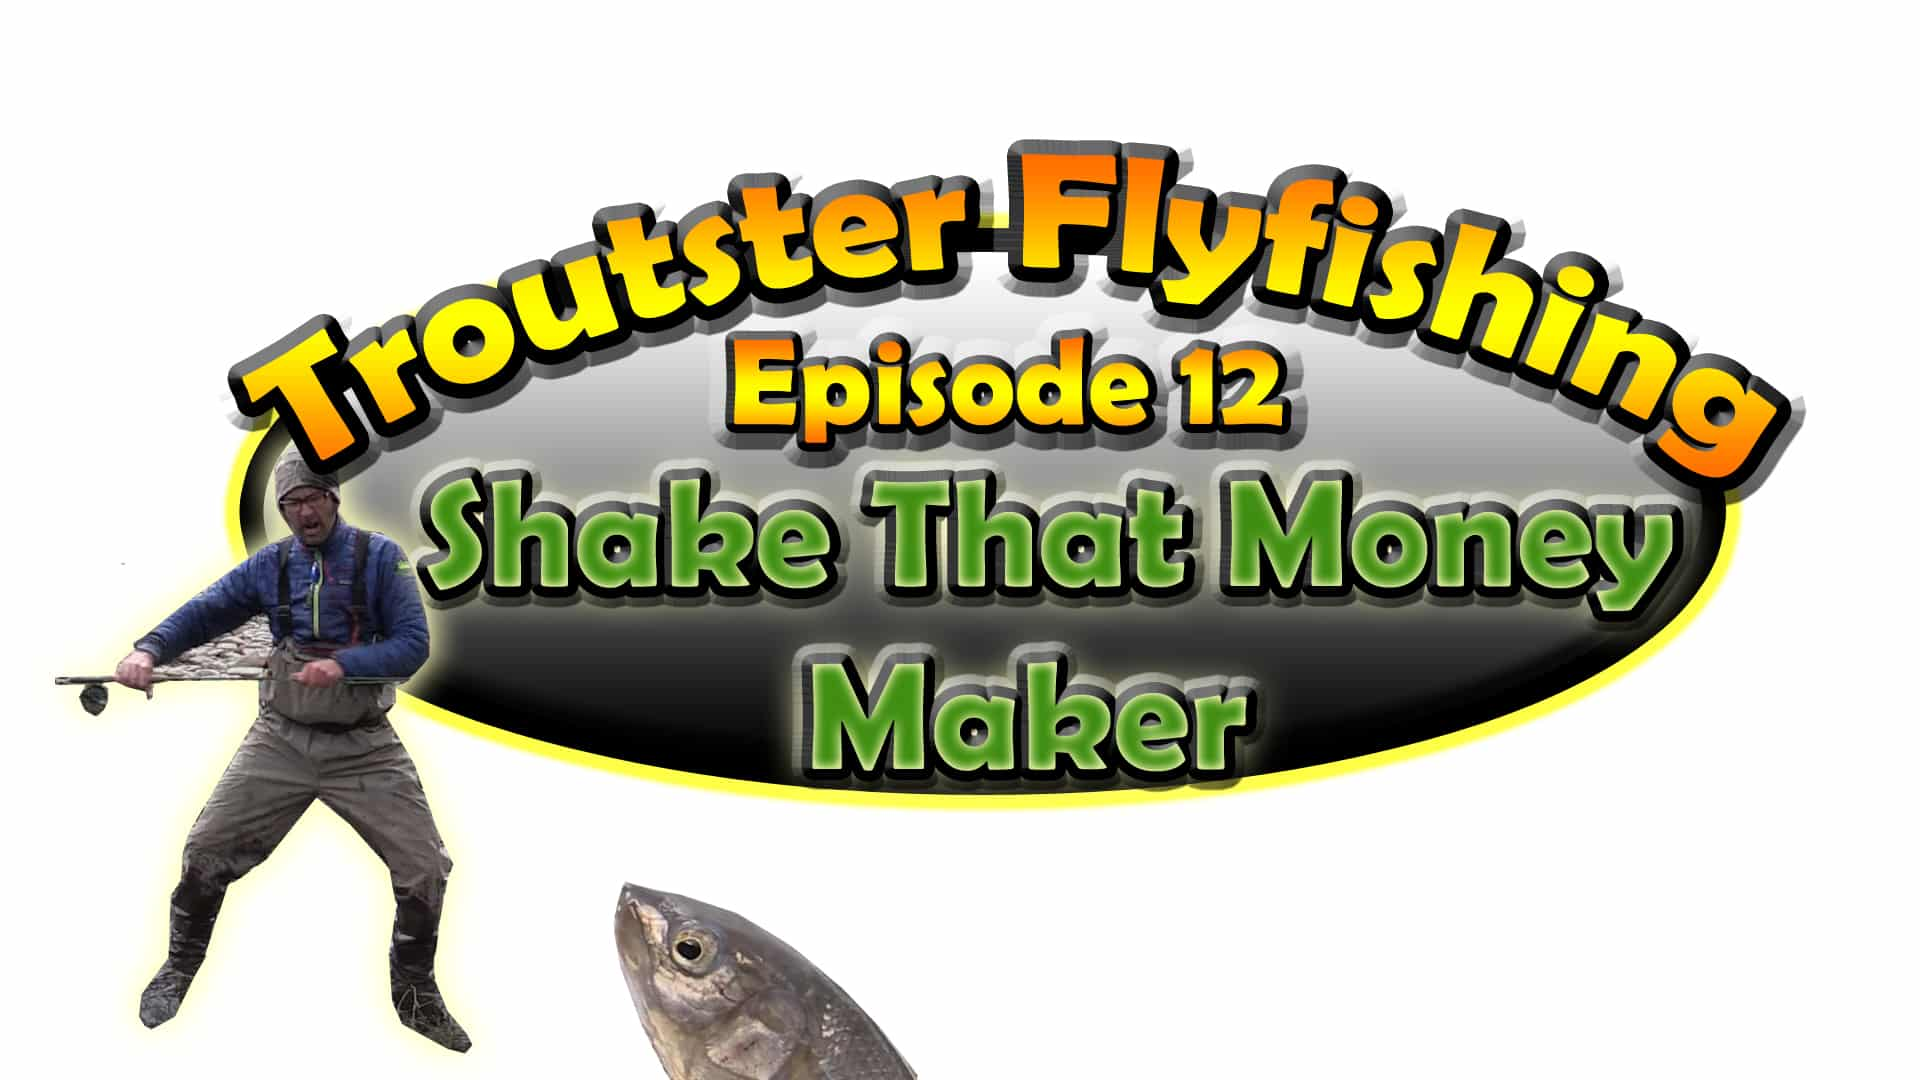 Episode 12 of Troutster flyfishing